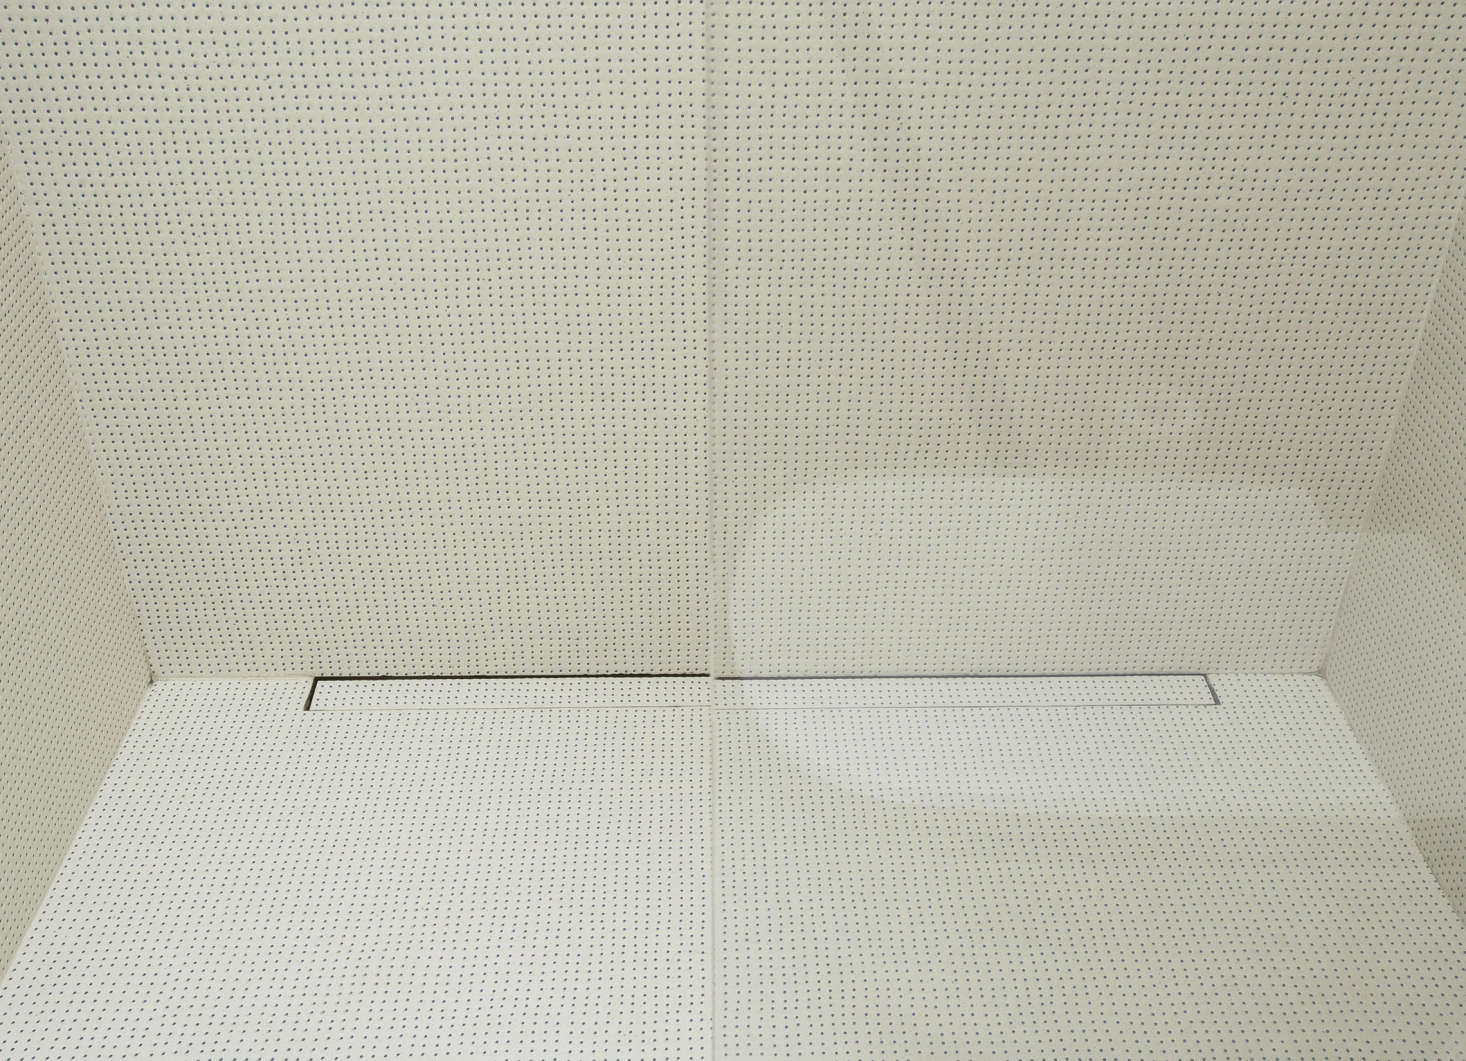 The tiles on the bathroom floor and shower walls are the ceramicPico Tiles by Ronan & Erwan Bouroullec for Mutina in Blue Dots Blanc. The drain is an ordinary linear shower drain with a tile insert.